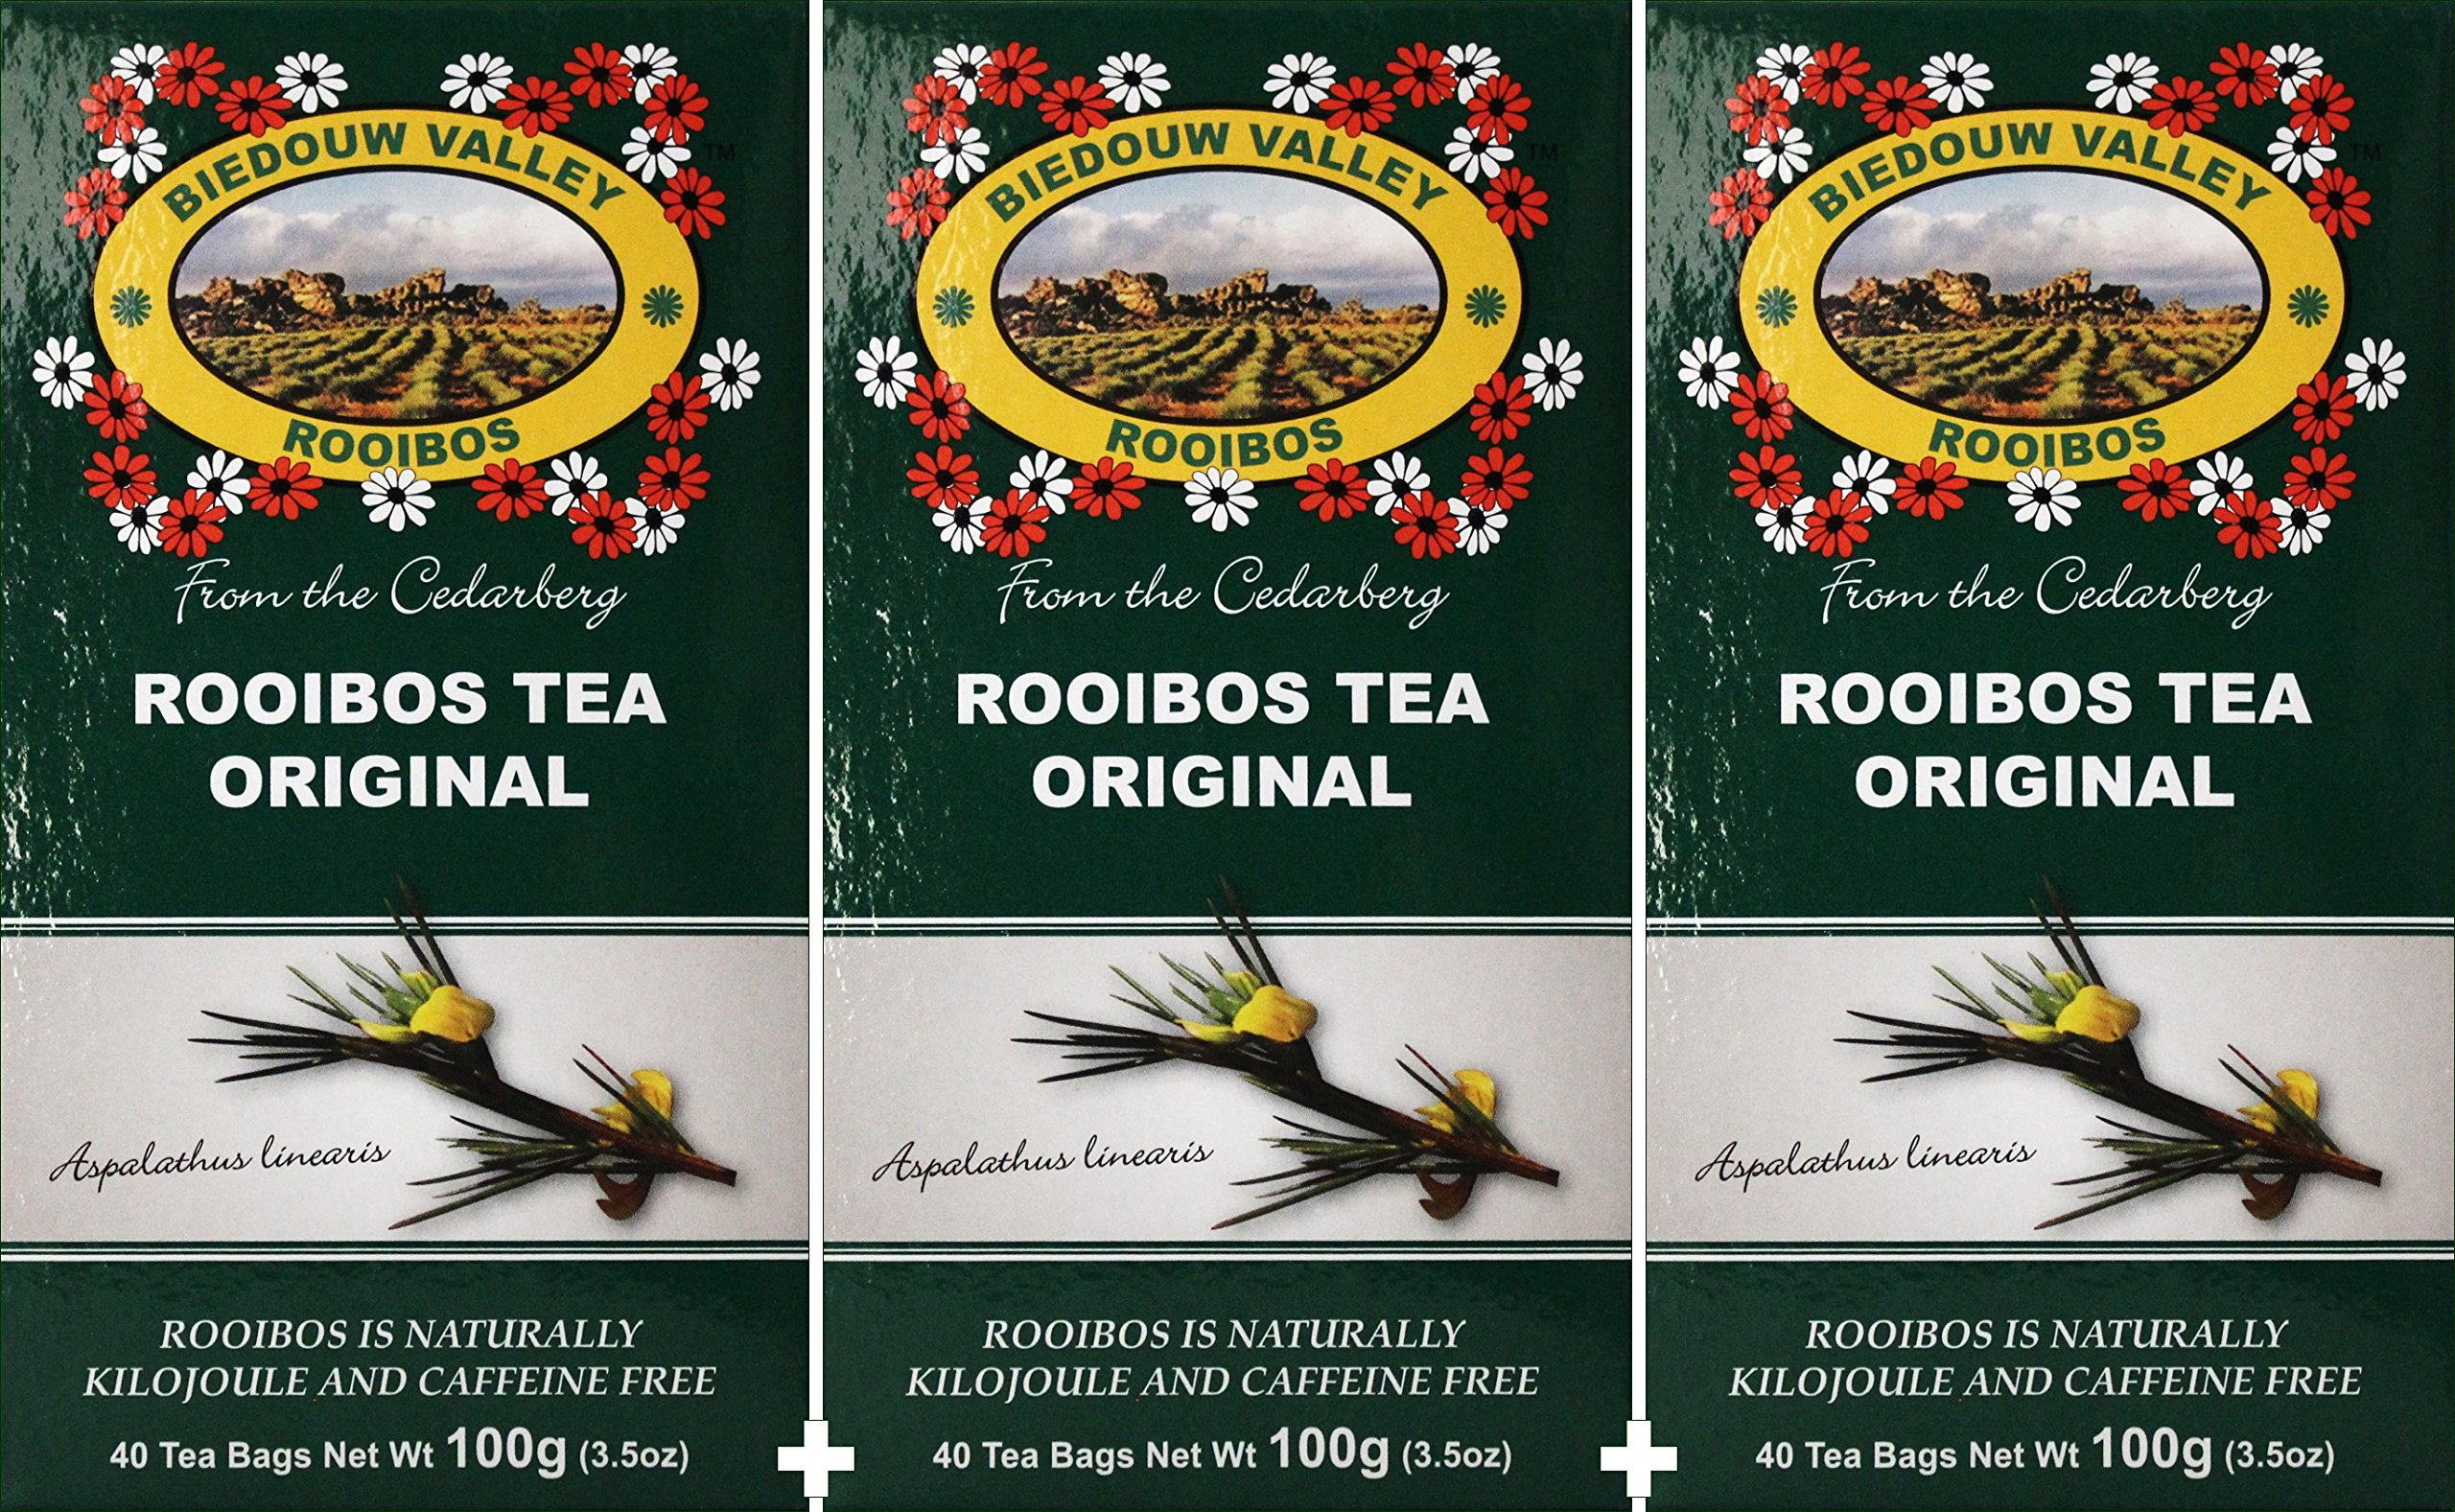 Rooibos Tea: 100% Natural Original South African (120 Bag Count 10.5oz) Red Bush Healthy Herbal Tea - Caffeine Free, Calorie Free, Antioxidant & Mineral Rich. Grown At High Altitude in Natural Habitat by Biedouw Valley Rooibos